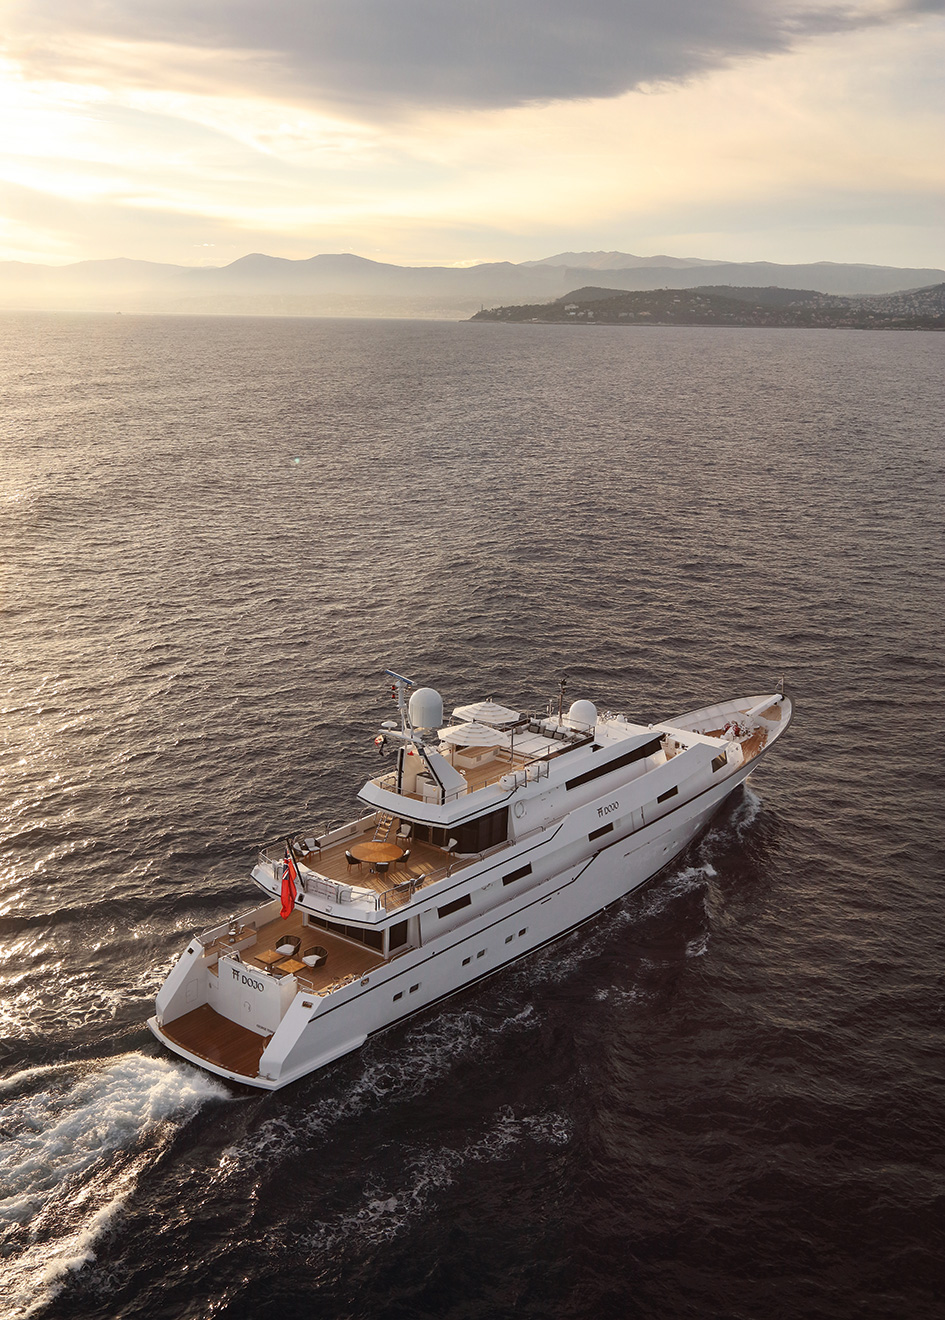 aerial-view-of-the-refitted-feadship-motor-yacht-dojo-credit-thierry-ameller